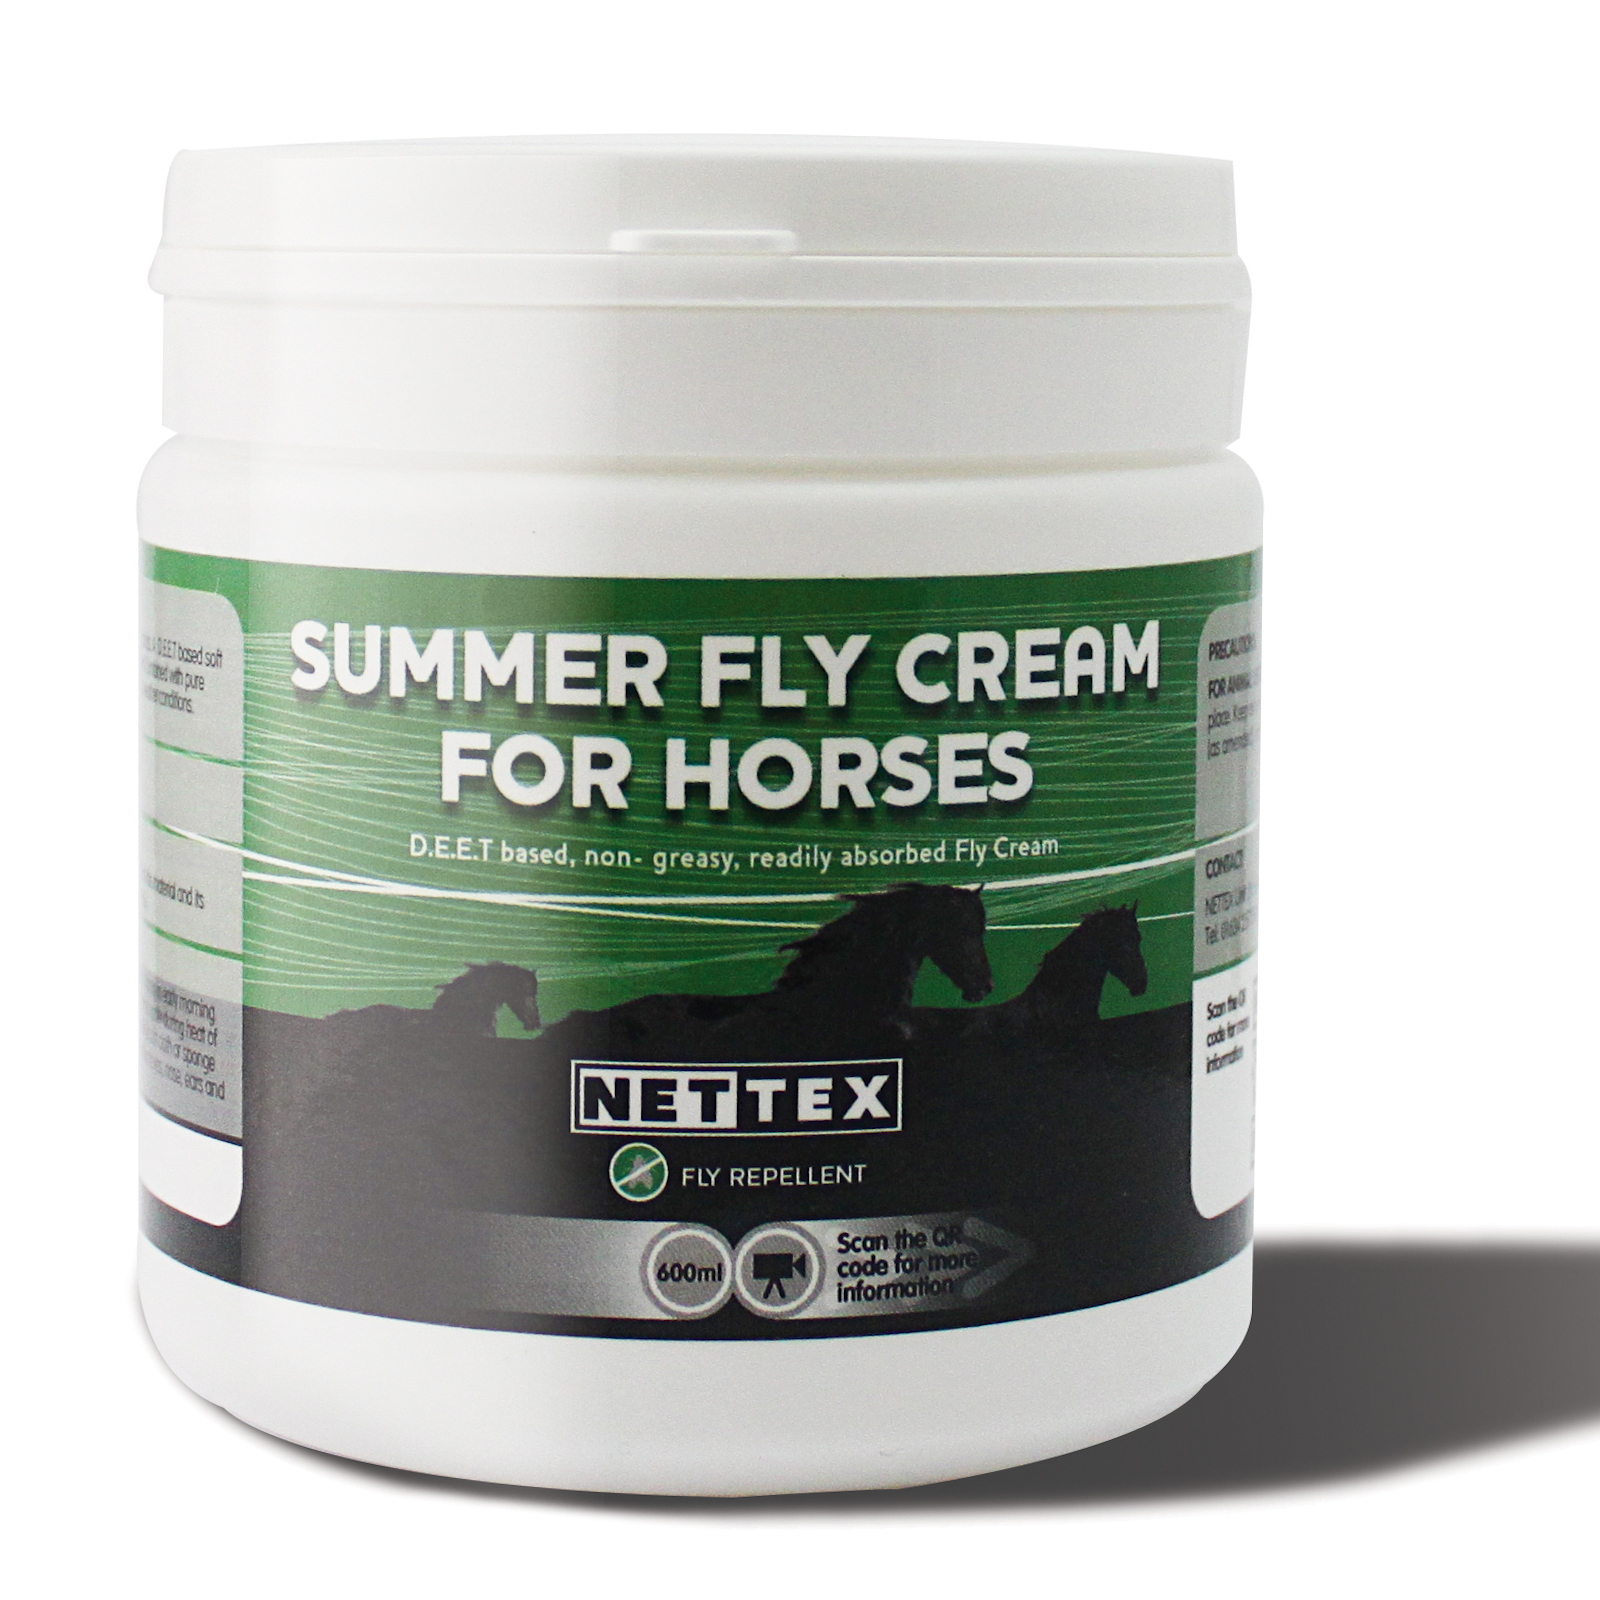 Nettex Summer Fly Cream för häst 600 ml